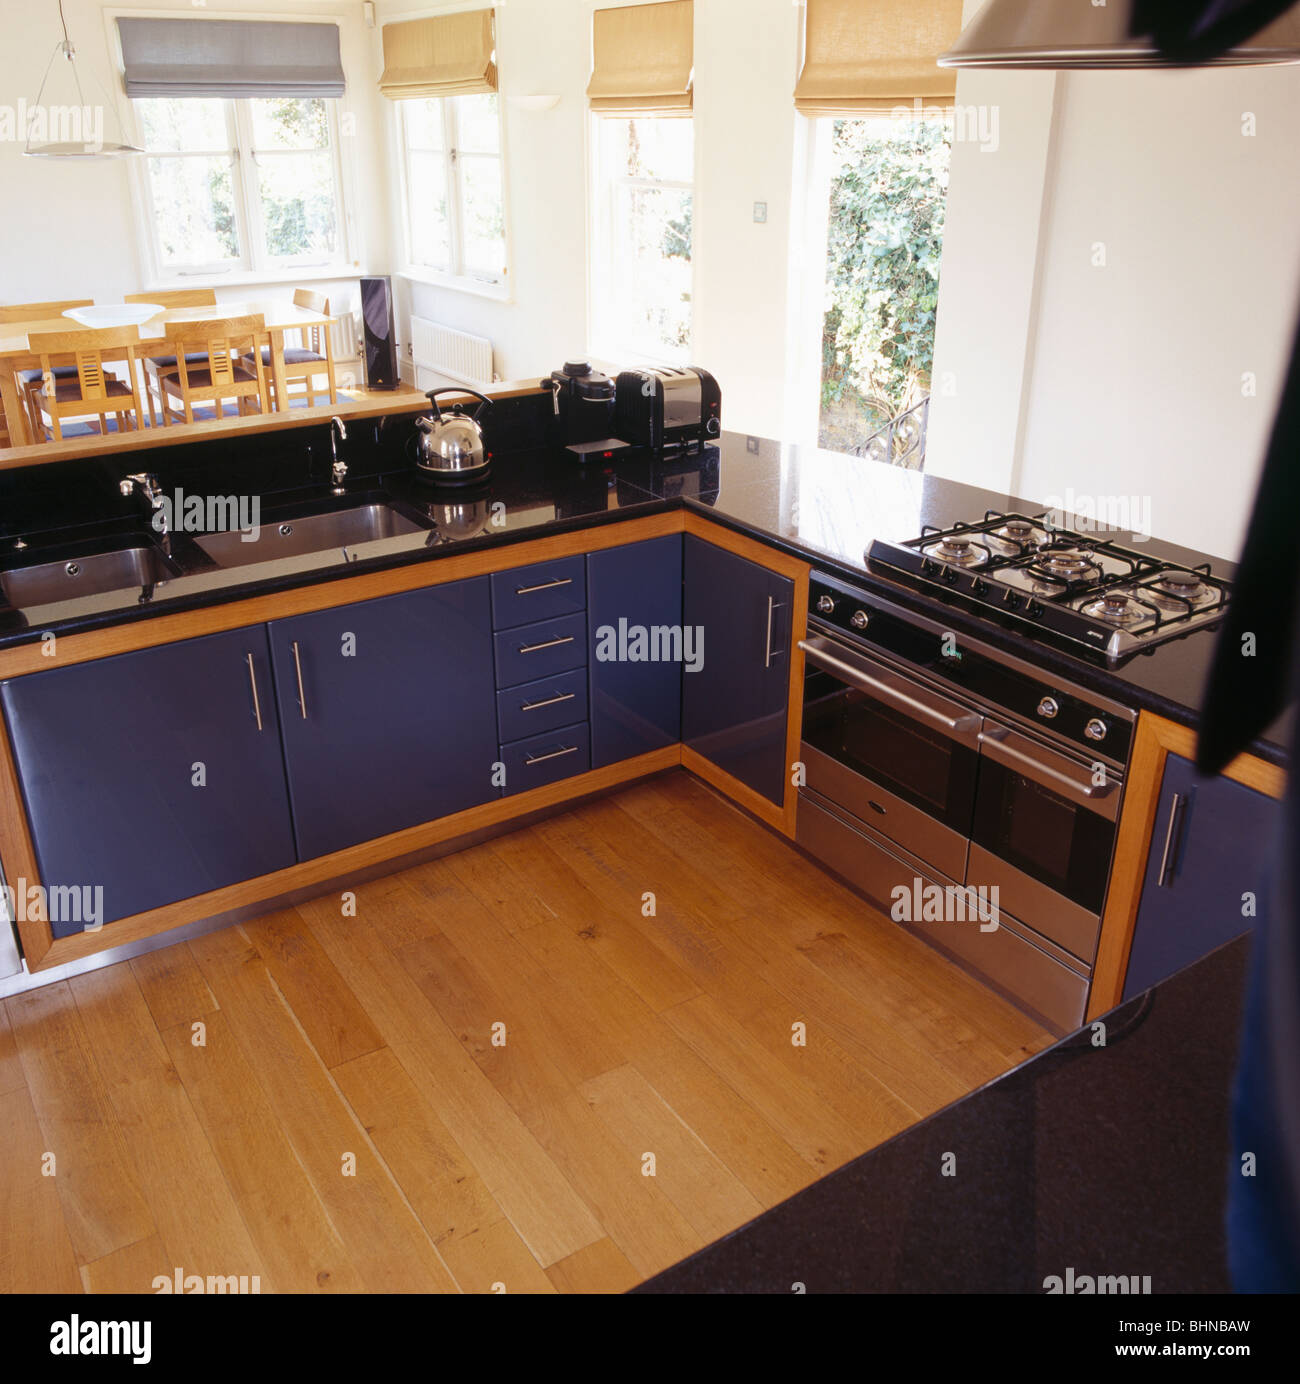 Open Oven In Kitchen: Black Fitted Units In Modern Open-plan Kitchen With Range